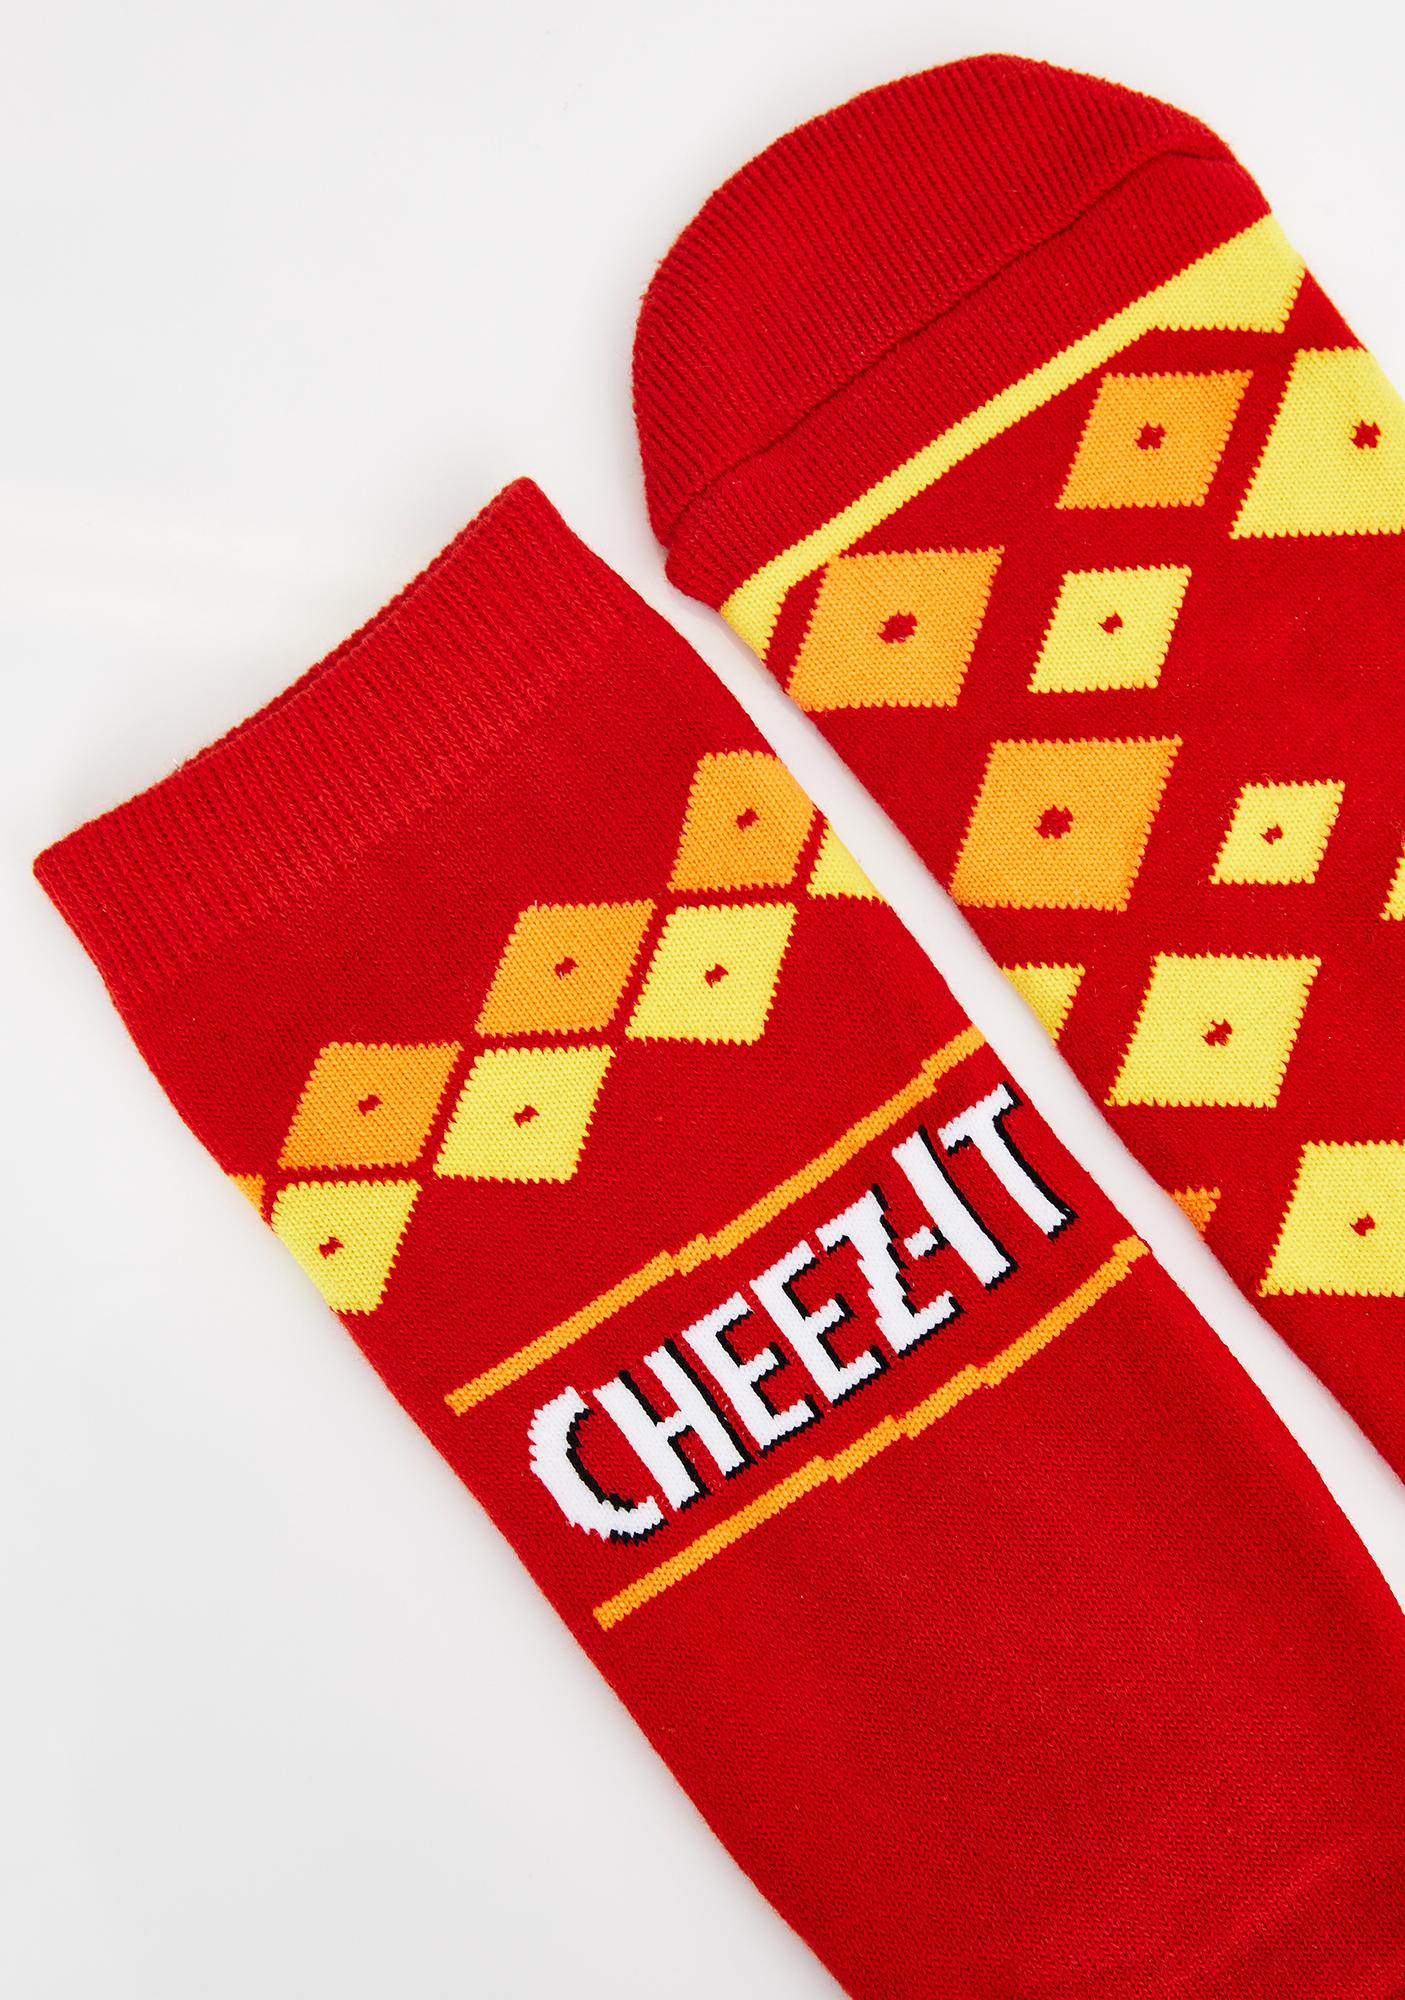 Cheezy-Does-It Socks